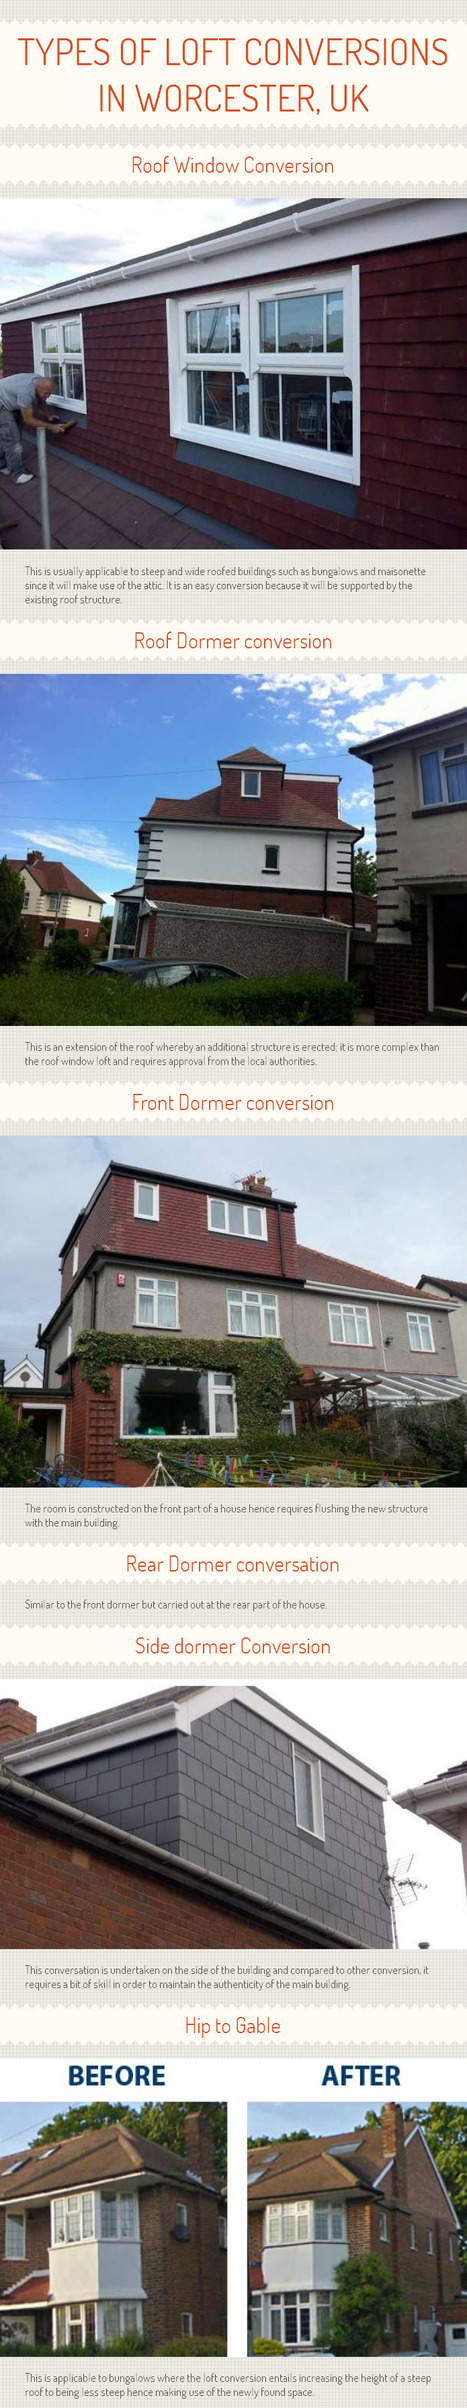 Types of Loft Conversions in Worcester, UK [INFOGRAPH] | loftconversionsspecialist | Scoop.it